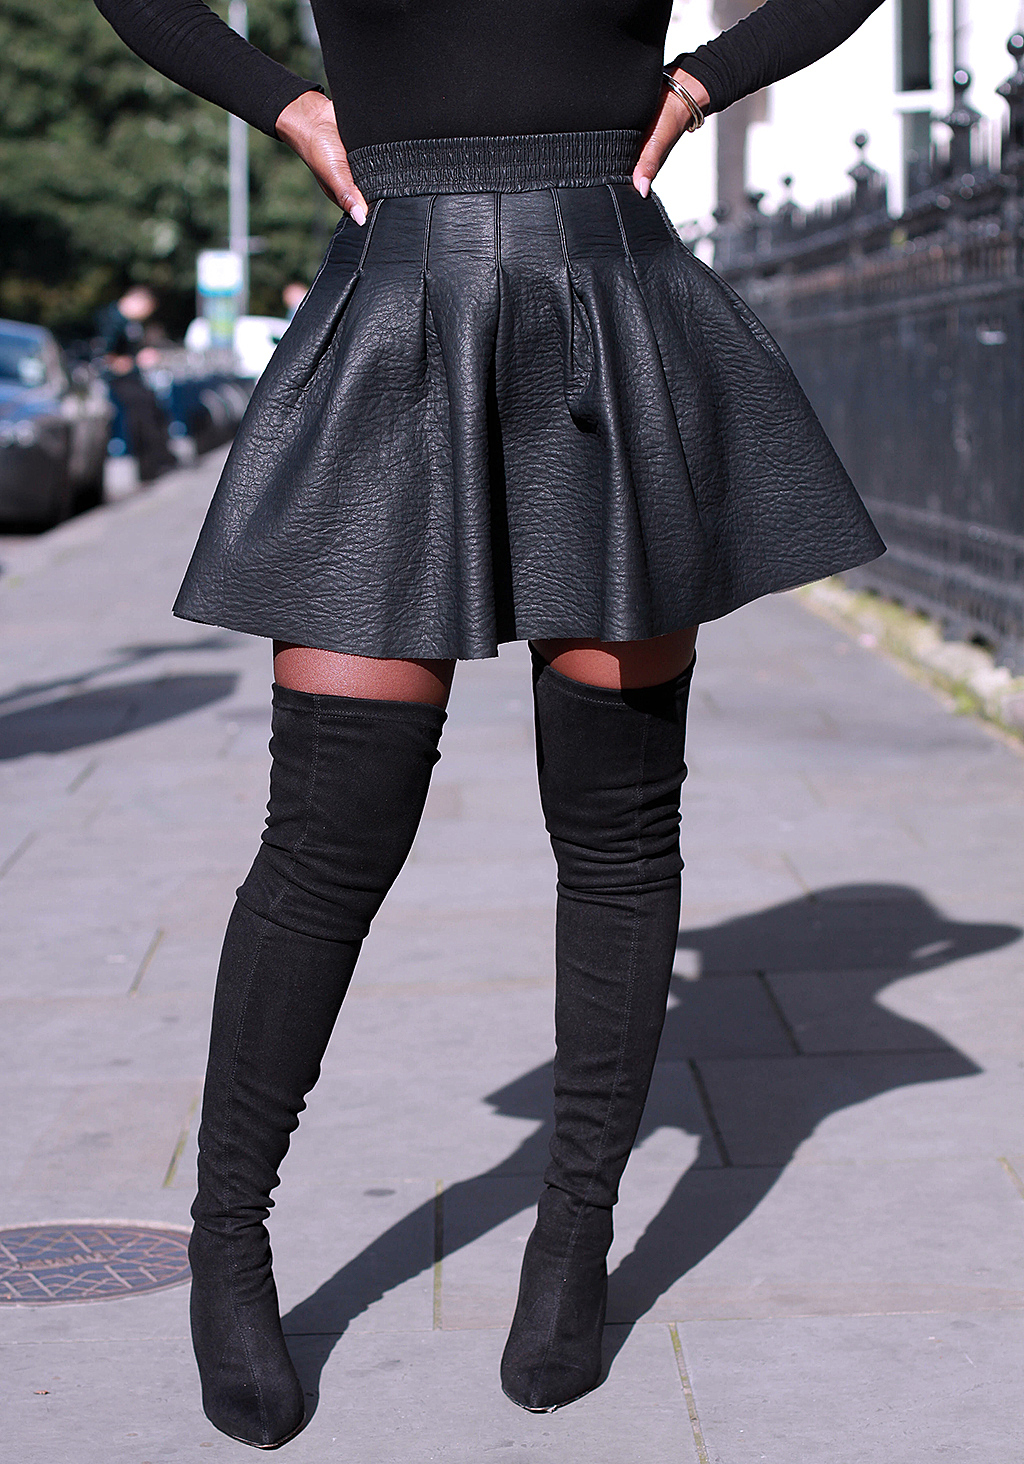 black-flared-leather-skirt-suede-black-thigh-high-boots-mirror-me ...